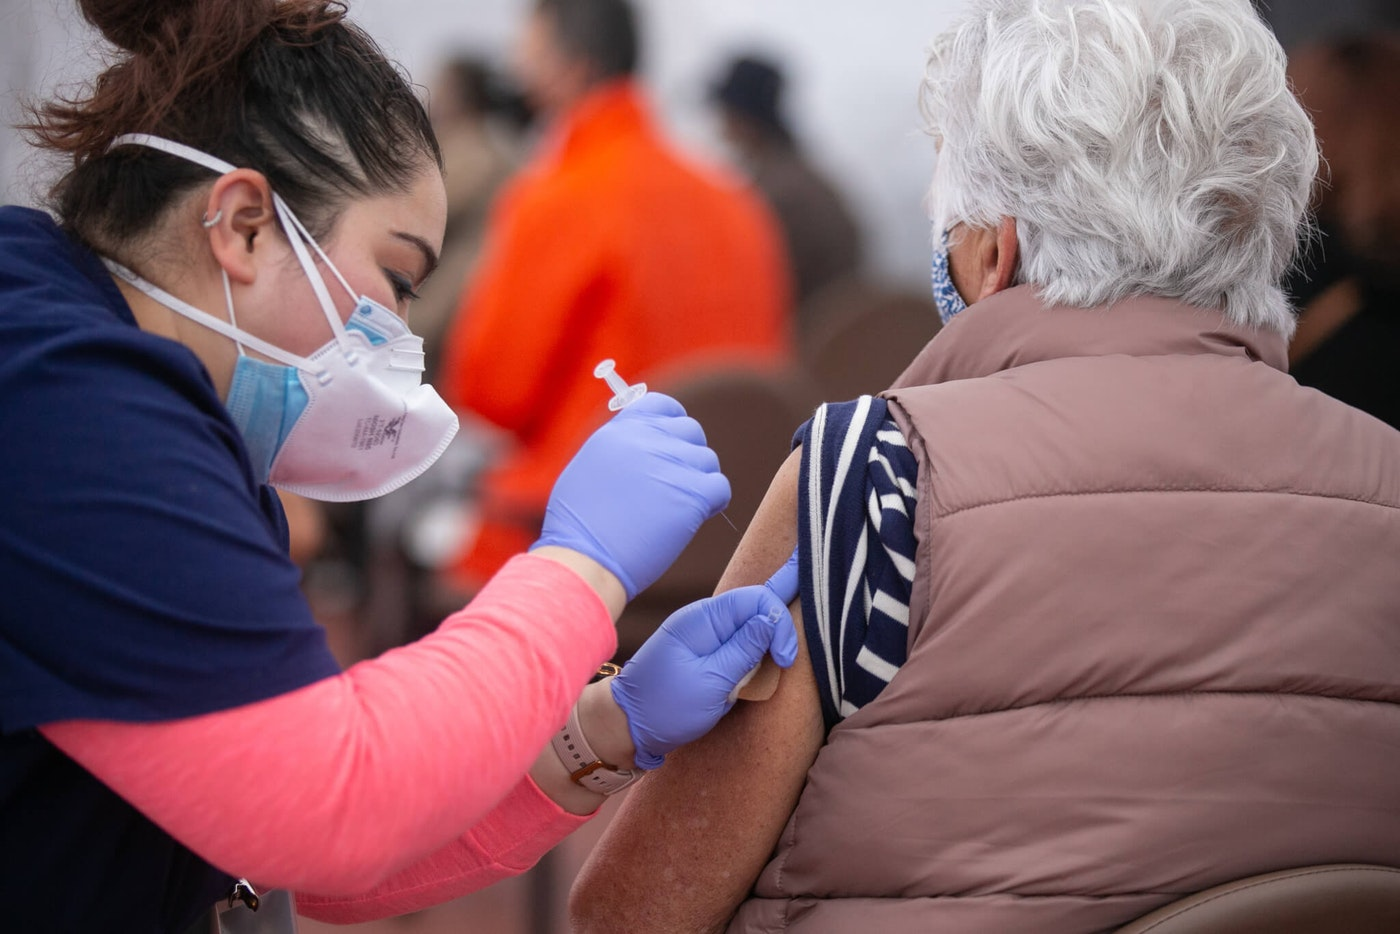 A nurse administers the COVID-19 vaccine at Kedren Health on Thursday, Feb. 11, 2021 in Los Angeles, CA. (Jason Armond / Los Angeles Times via Getty Images)